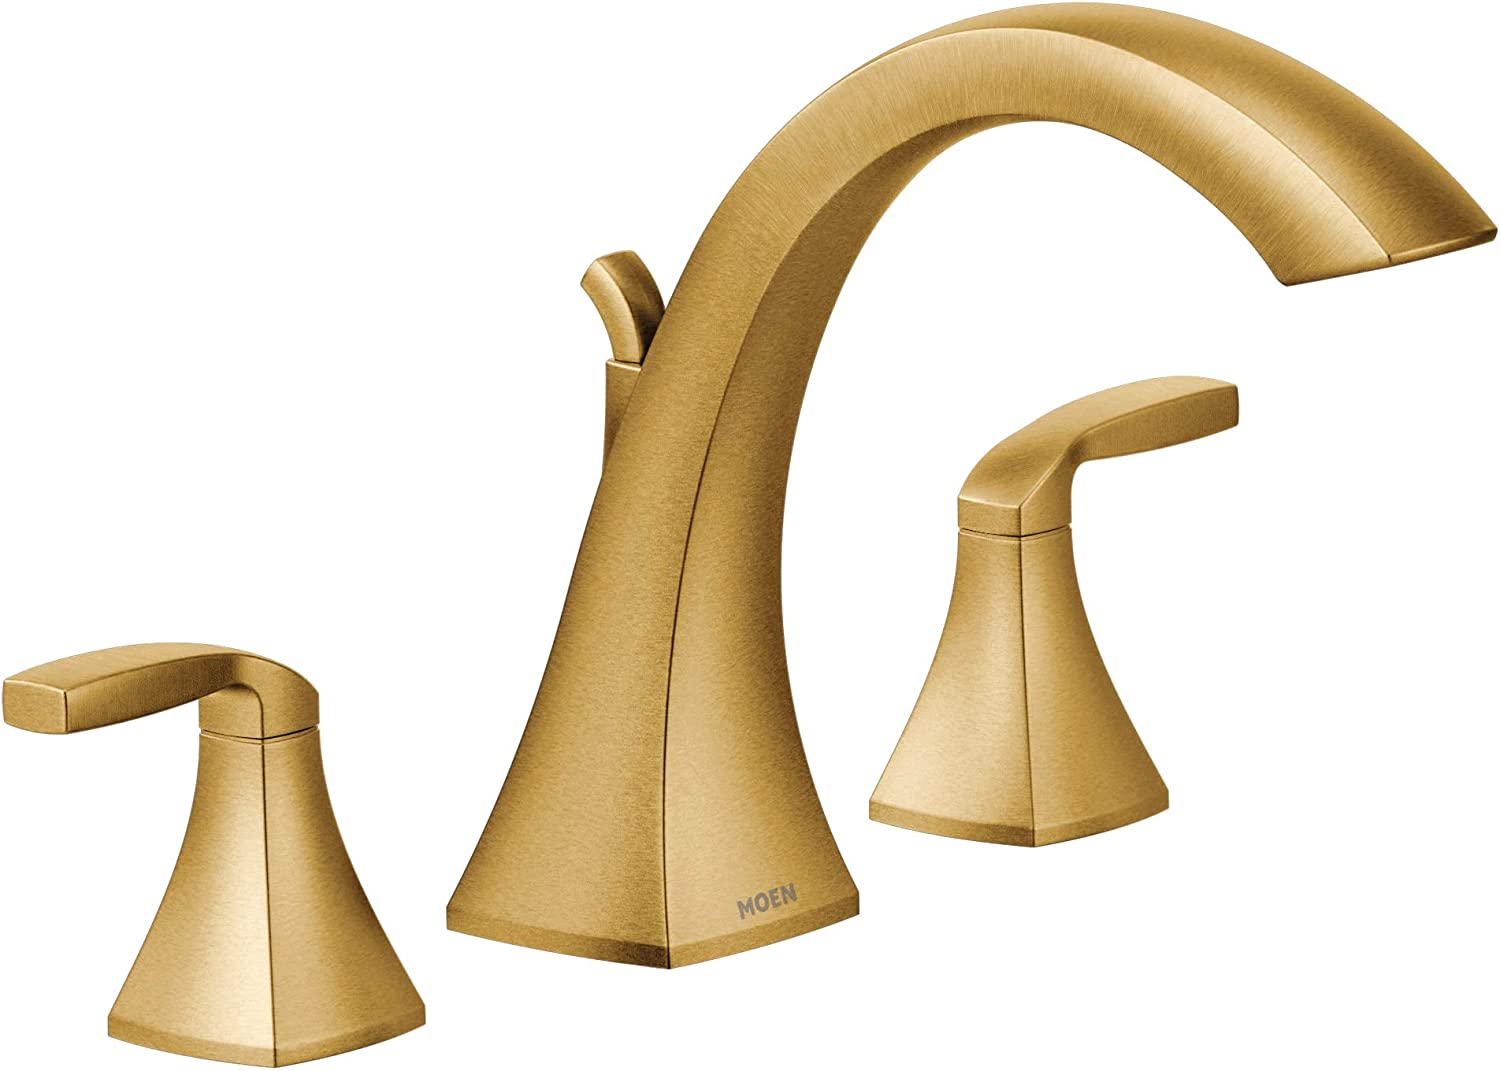 Moen T693BG Voss Two-Handle Deck Mount Roman Tub Faucet Trim Kit, Valve Required, Brushed Gold